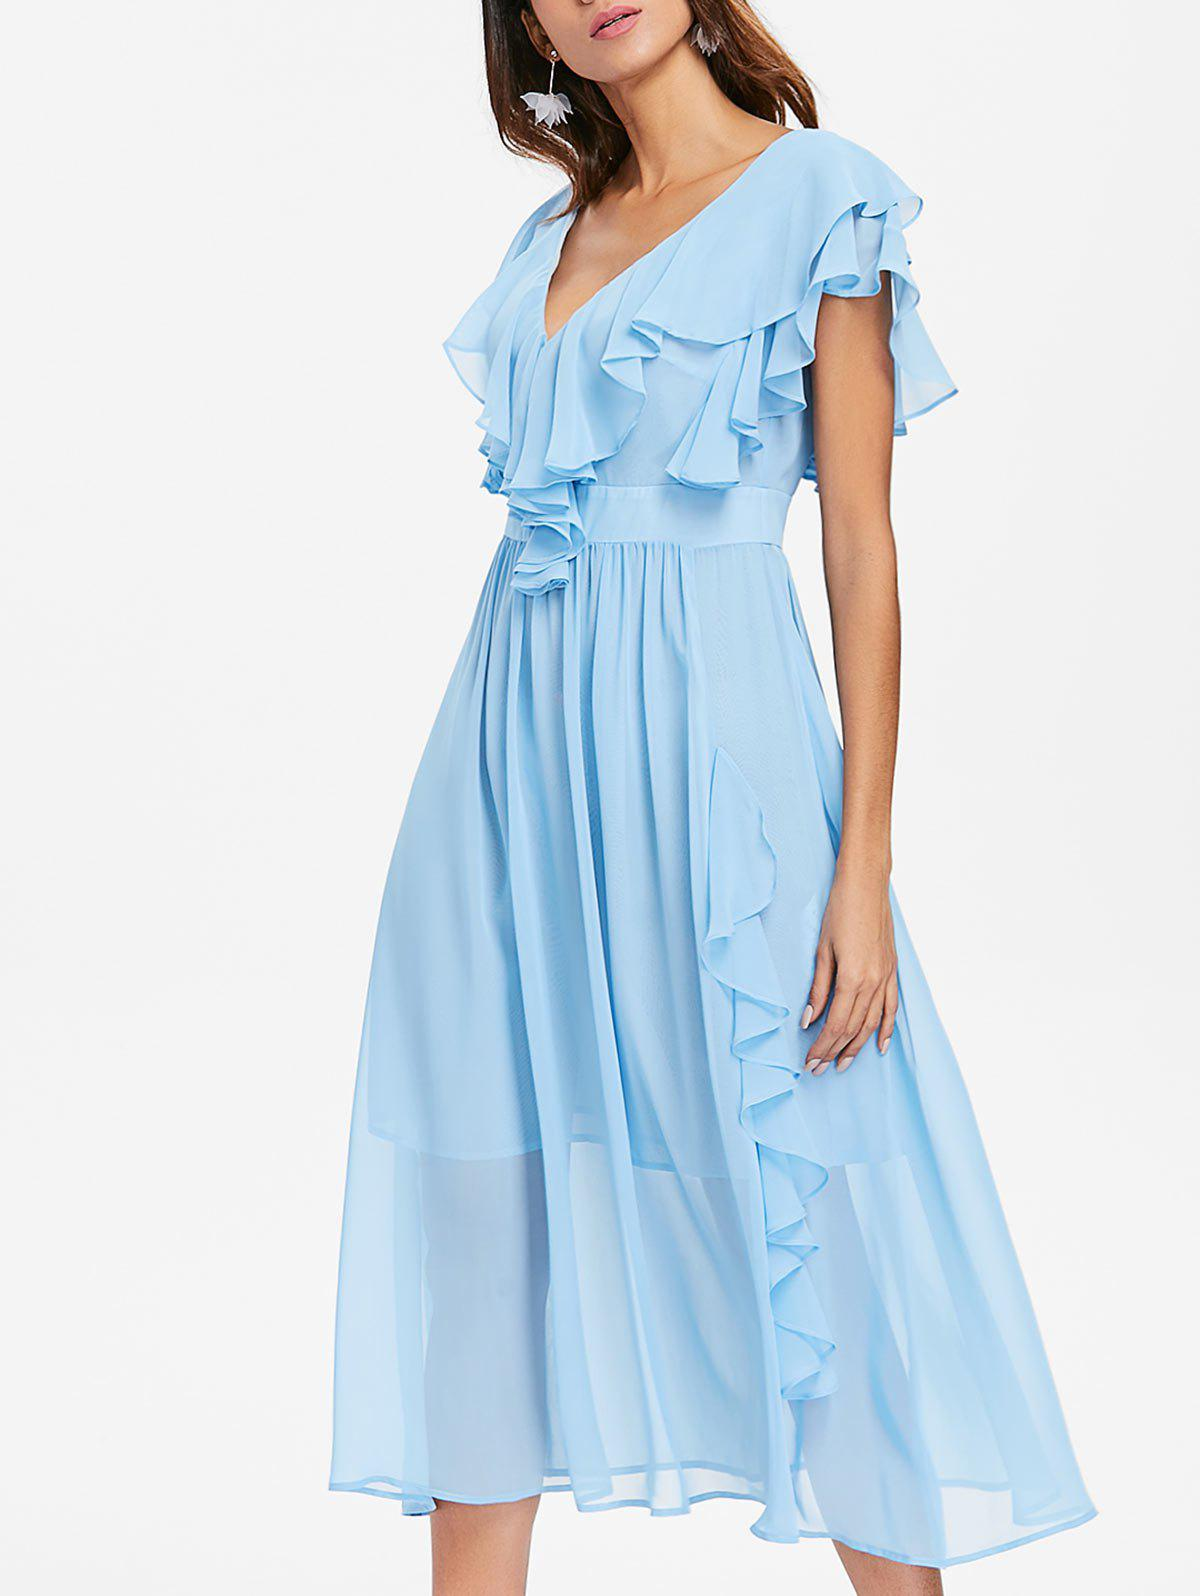 Shops Plunging Neckline Backless Ruffle Midi Prom Dress